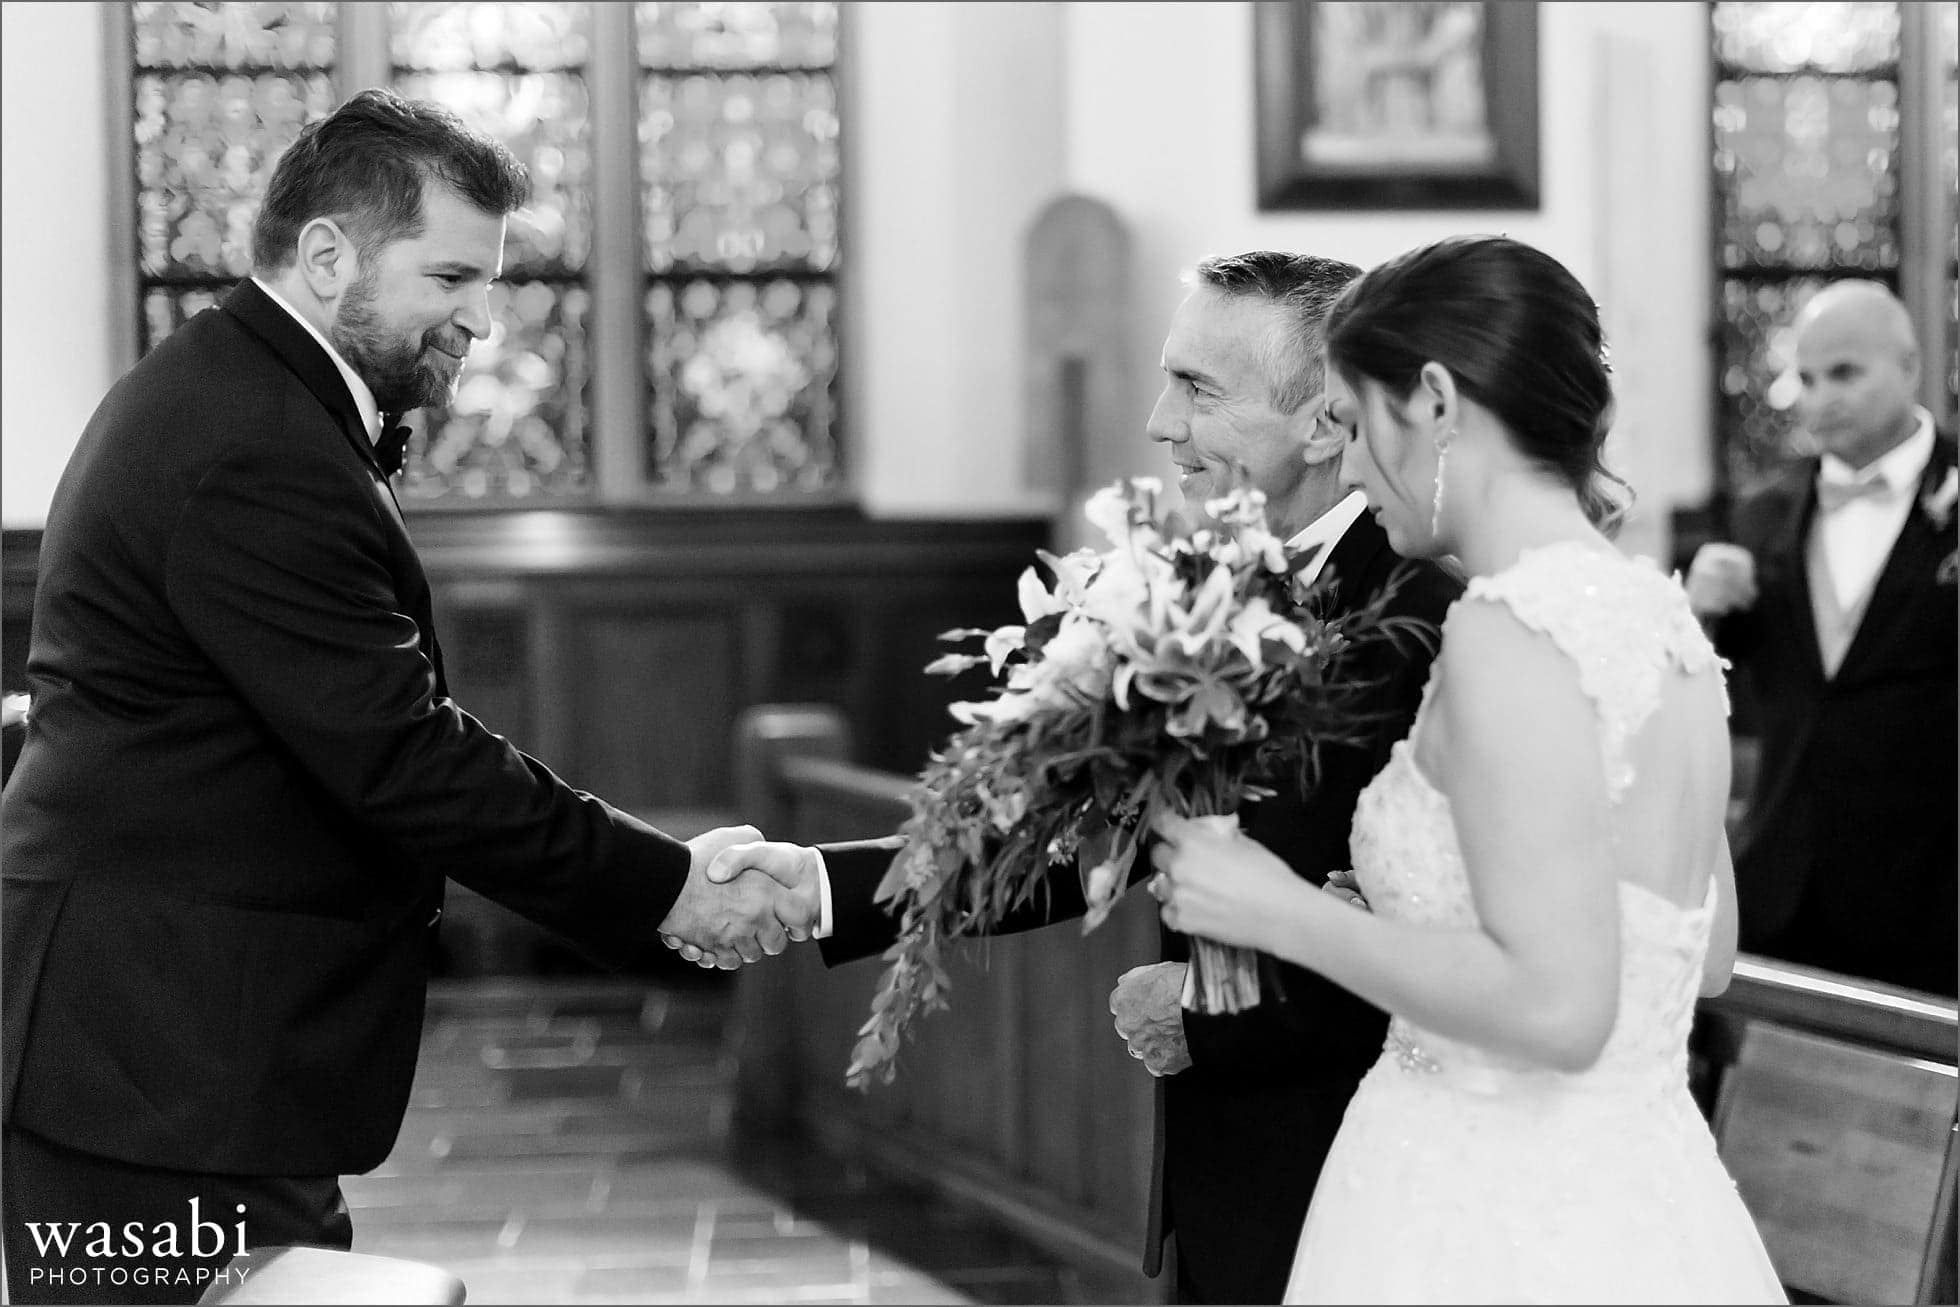 groom shakes hands with father of the bride during wedding ceremony at St Luke Roman Catholic Church in River Forest